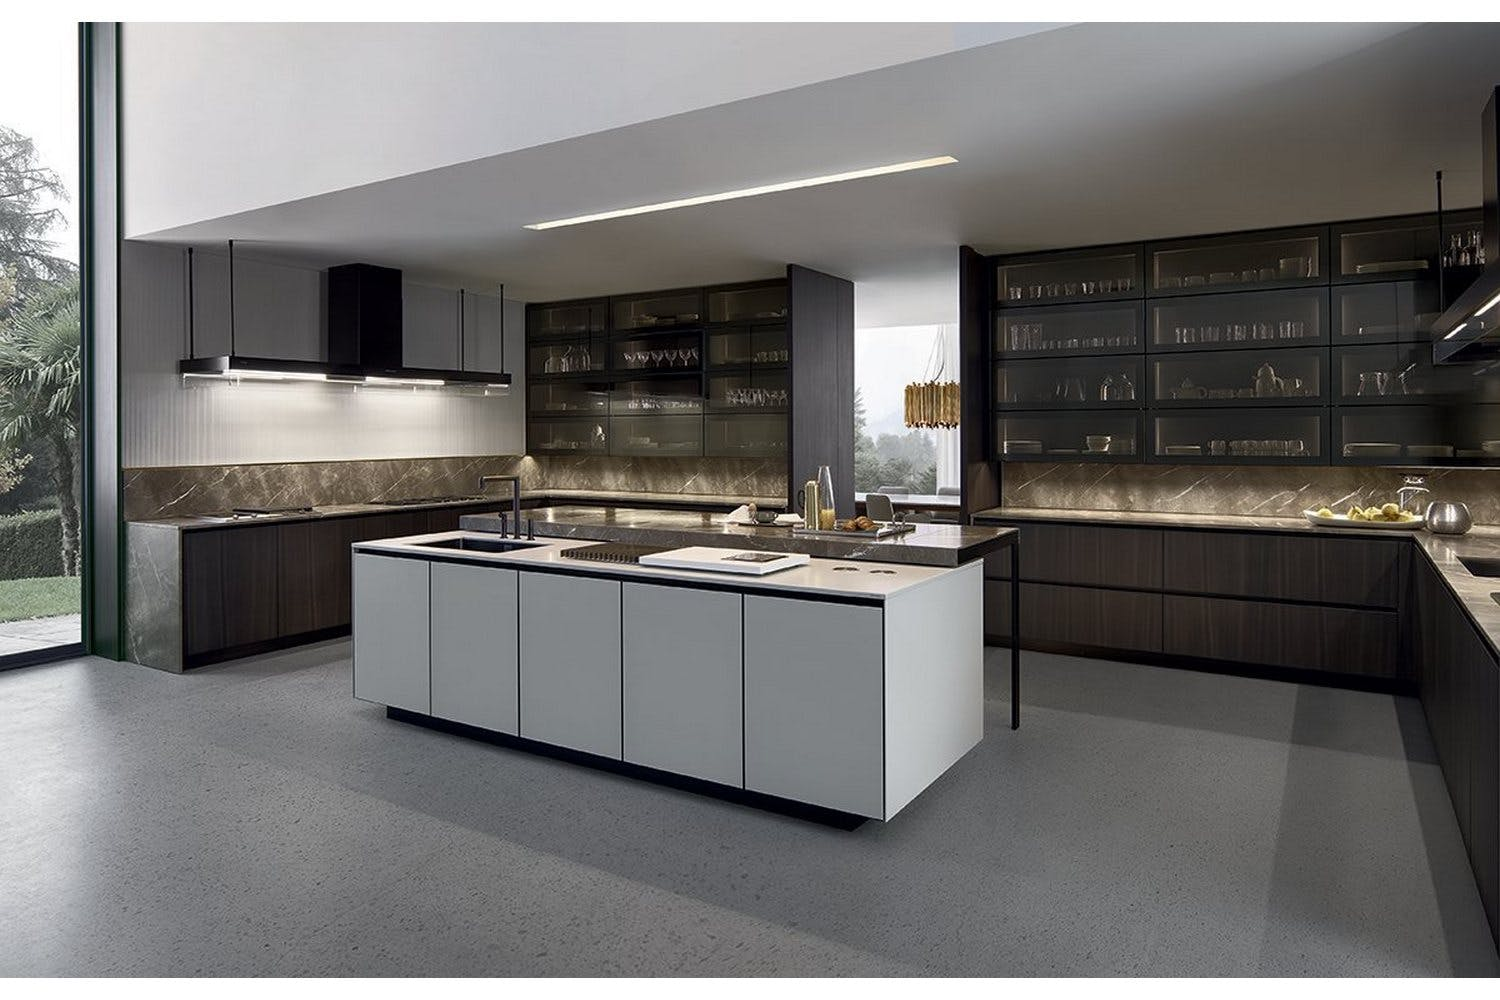 Poliform Kitchen Design.  Arthena Kitchen by R D Varenna for Poliform Furniture Australia